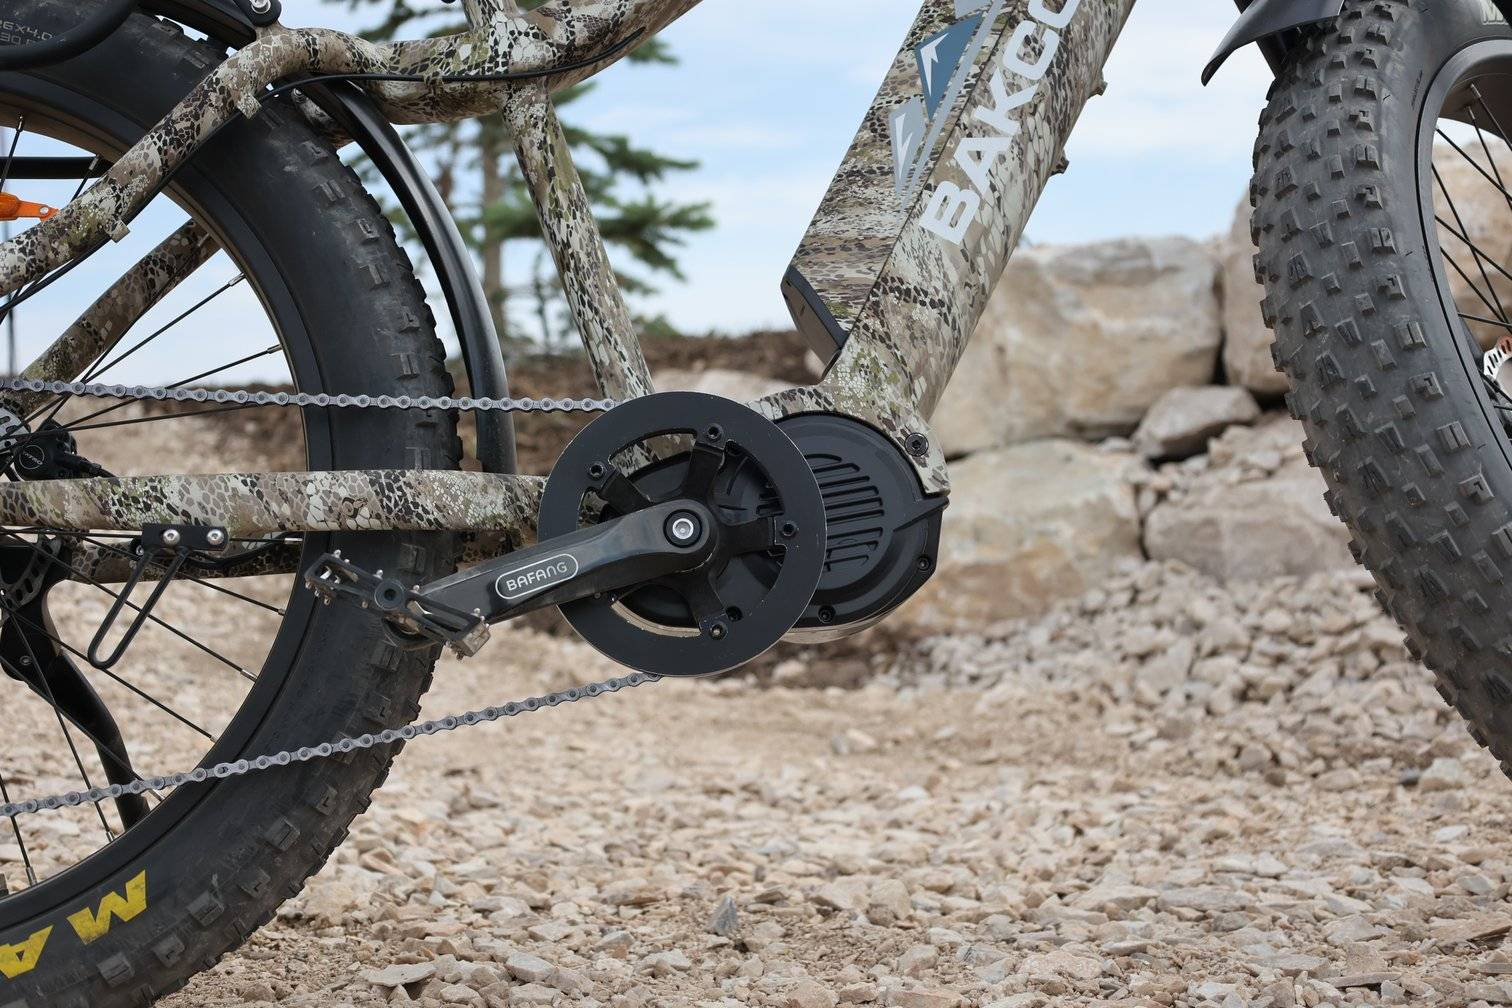 eBike Breakdown Off-Road? Here are the Tools and Parts You'll Need